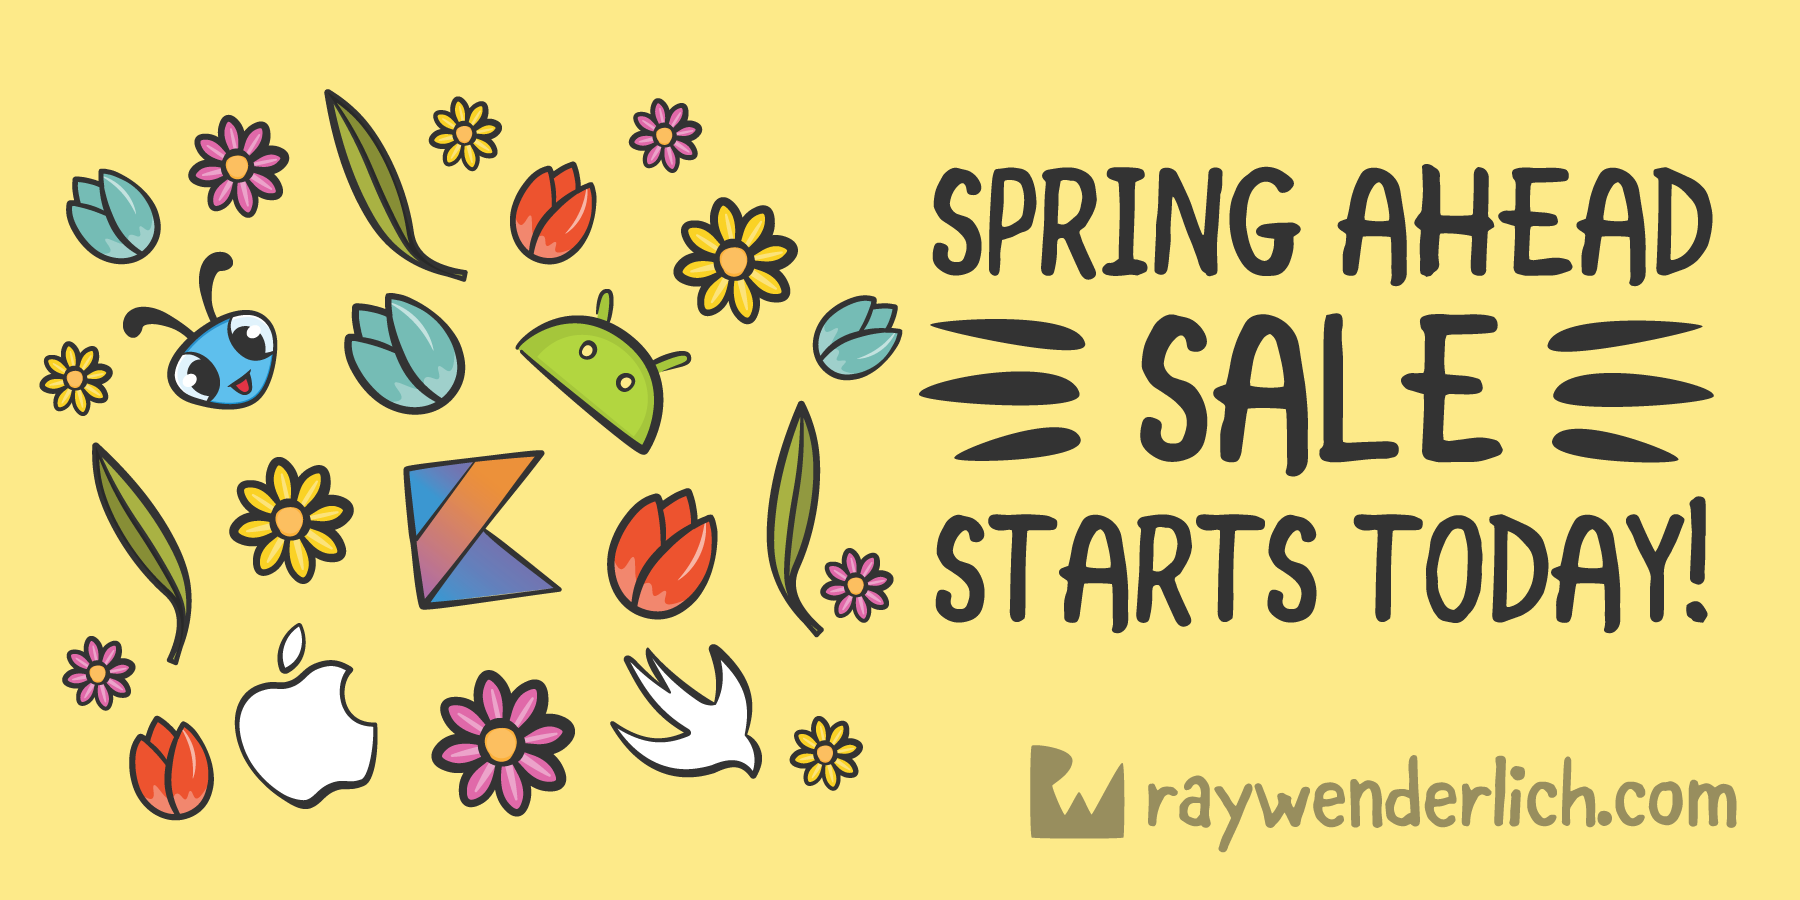 Spring Ahead Sale: Subscriptions from $149 and Books 50% Off! [FREE]